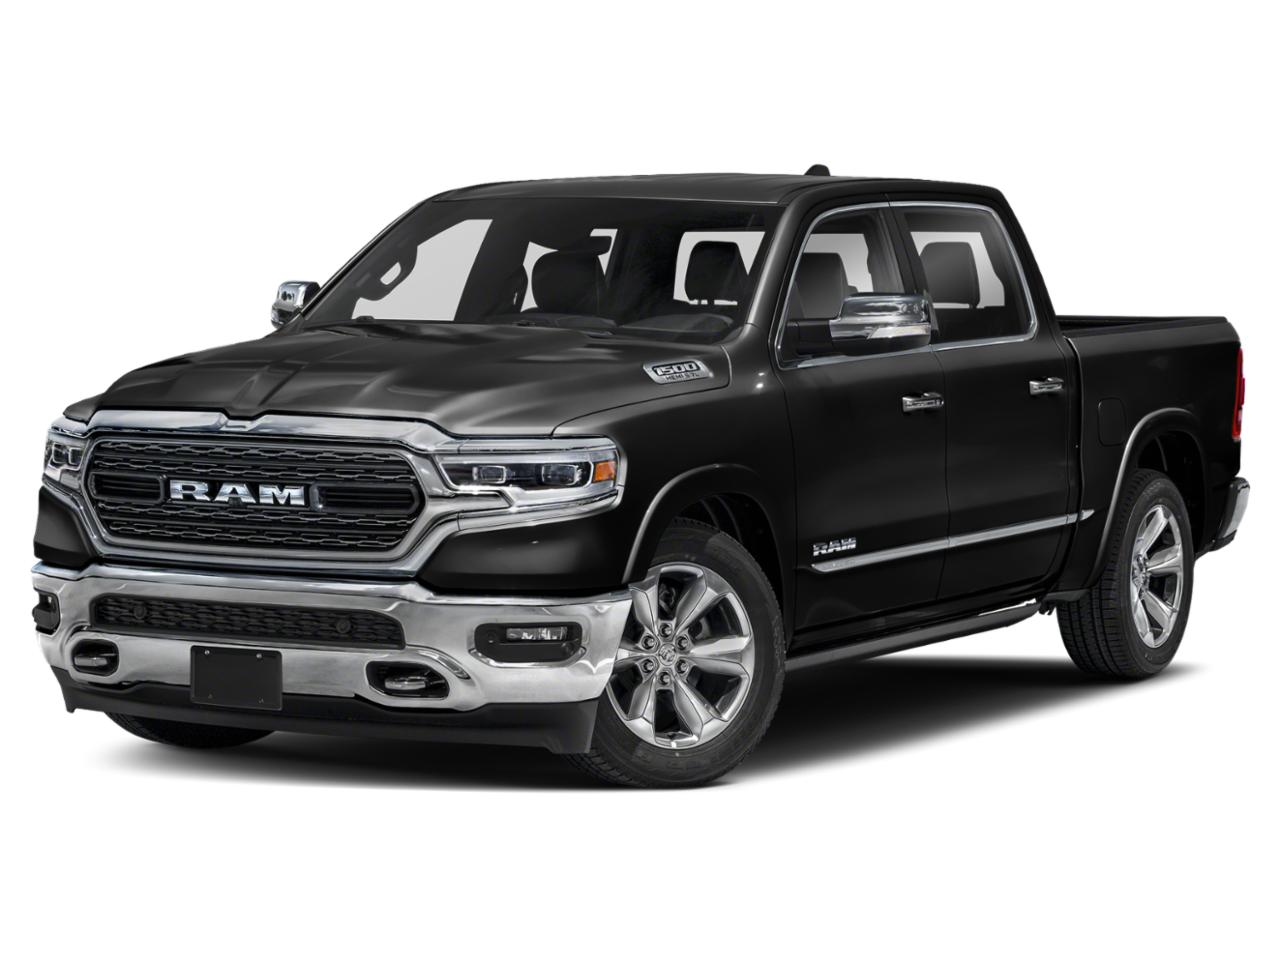 2020 Ram 1500 LIMITED Crew Cab Pickup Slide